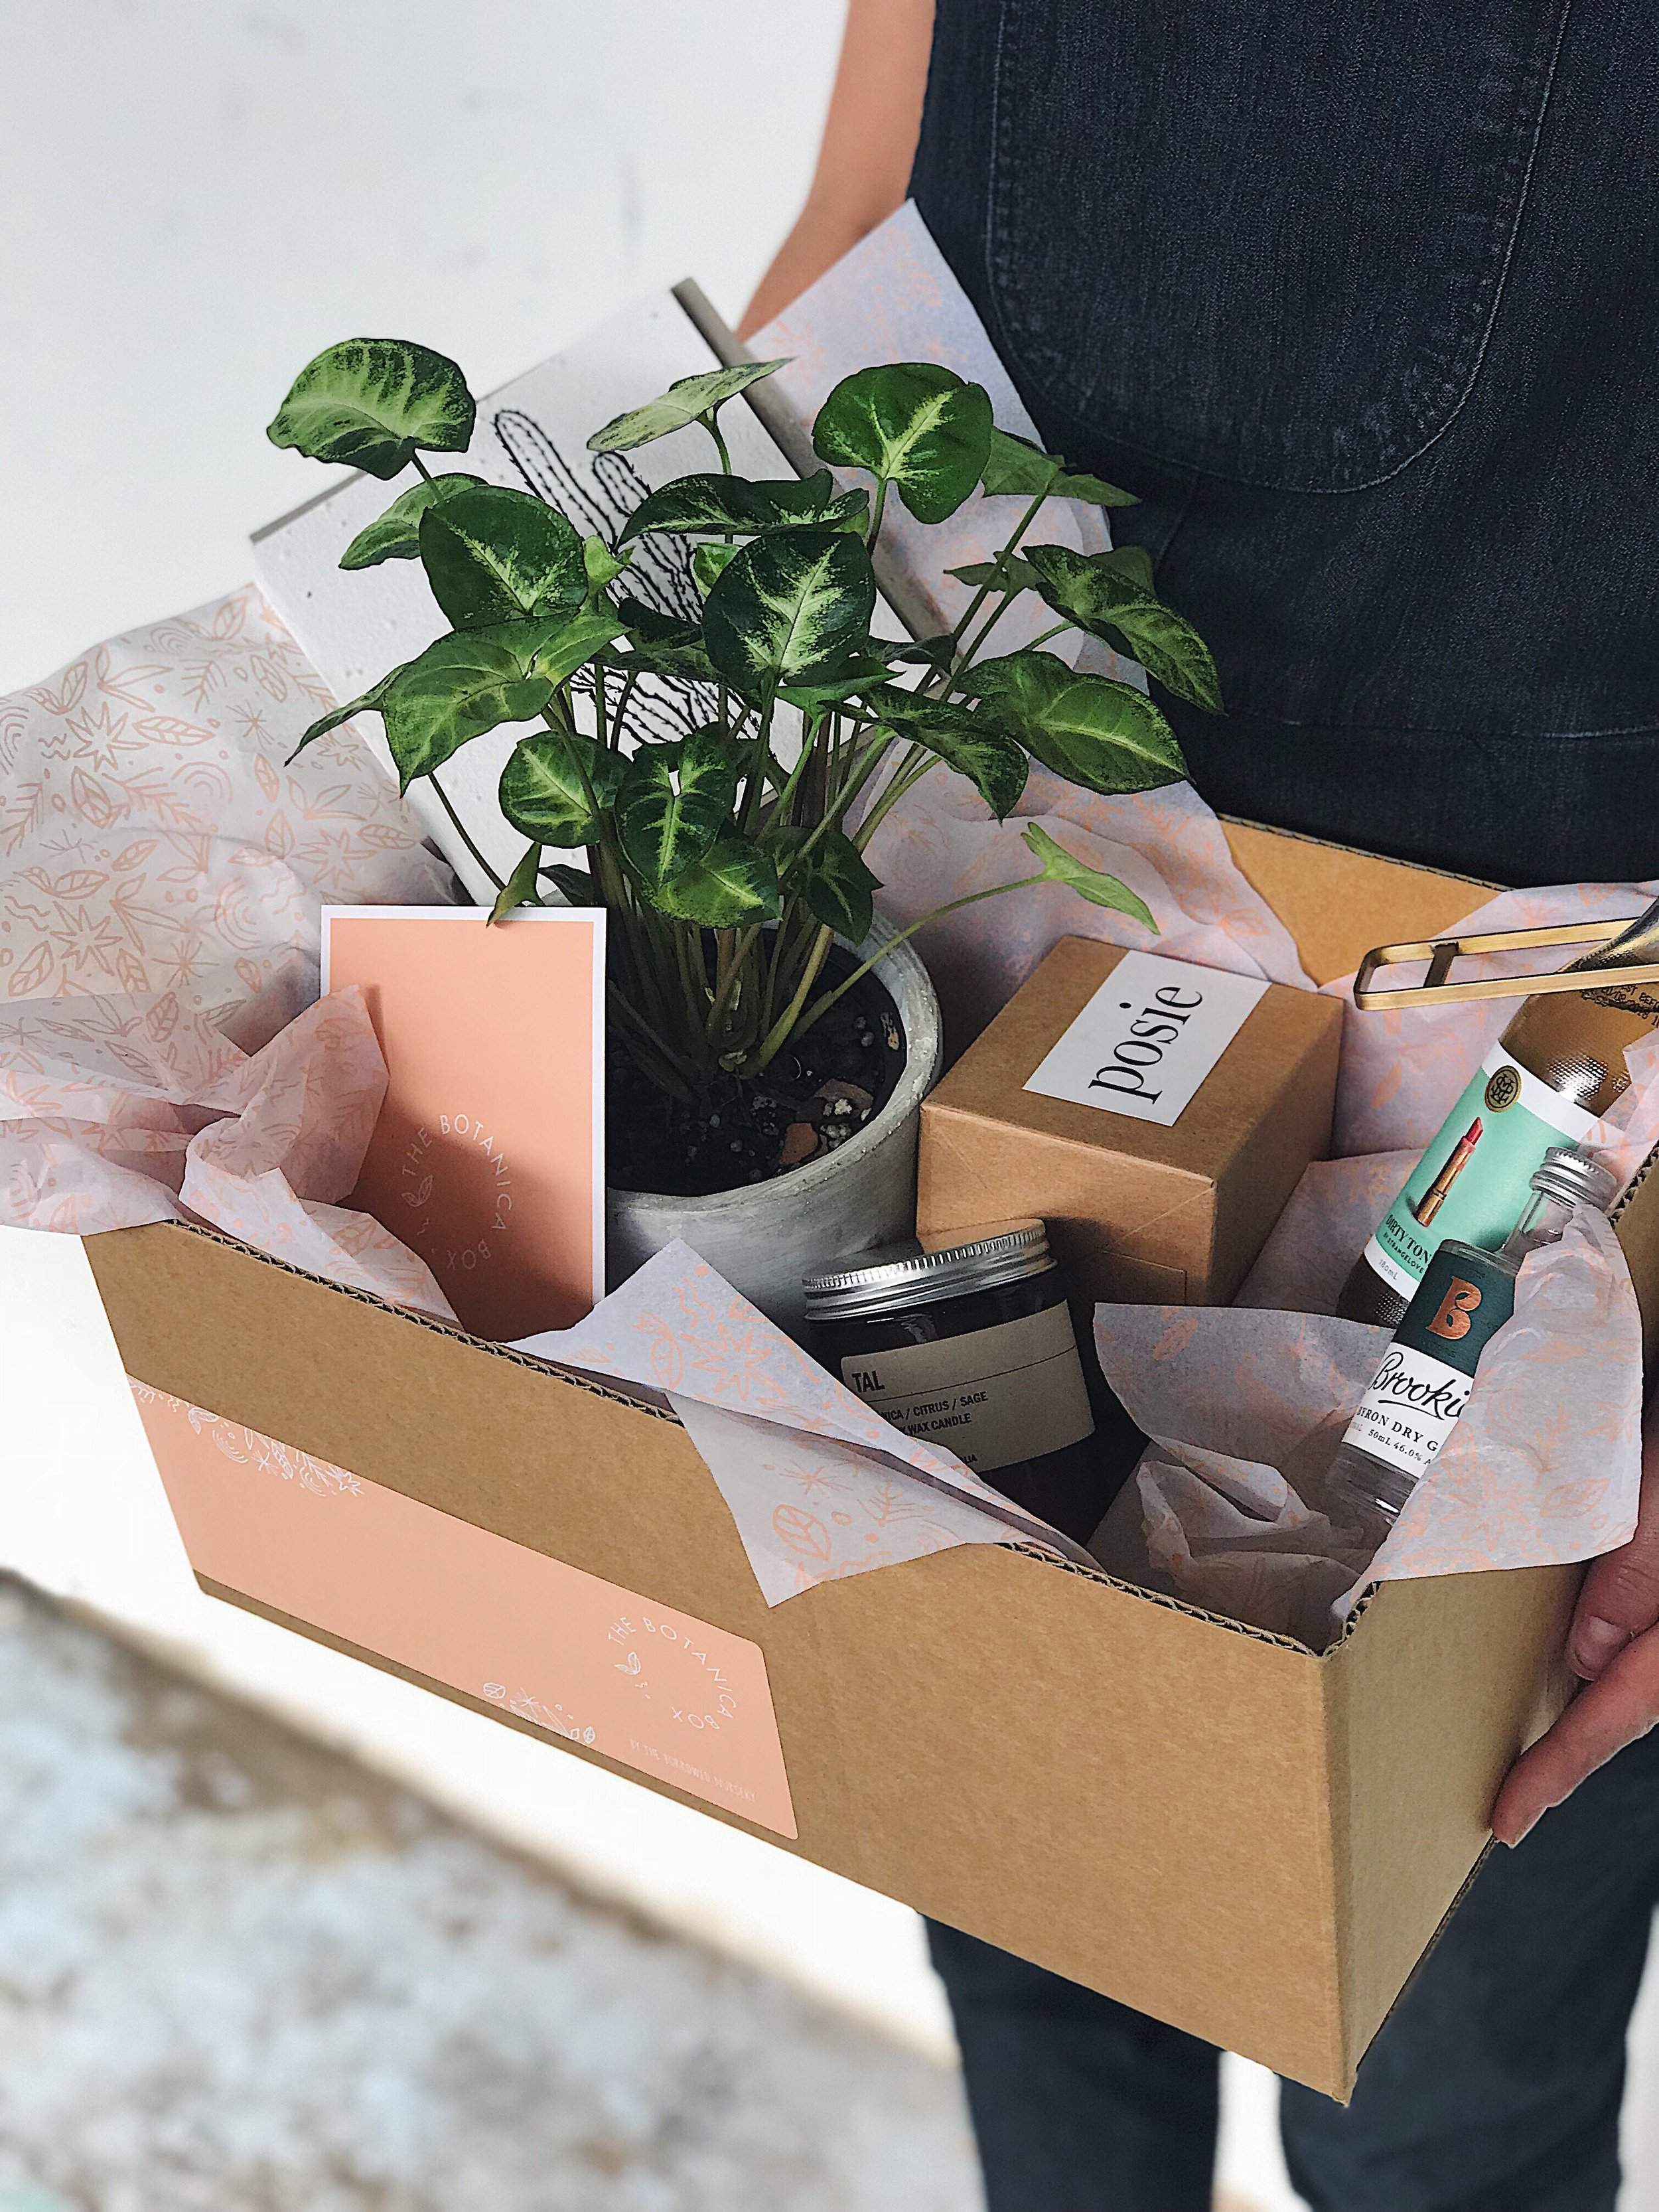 The Botanica Box - A collection of botanical inspired goods, boxed and delivered. Our sister company The Botanica Box offers a range of carefully considered gift boxes showcasing quality botanical inspired products by Australian brands, artisans and growers. Servicing selected Gold Coast suburbs 5 days a week you can shop now via the link below